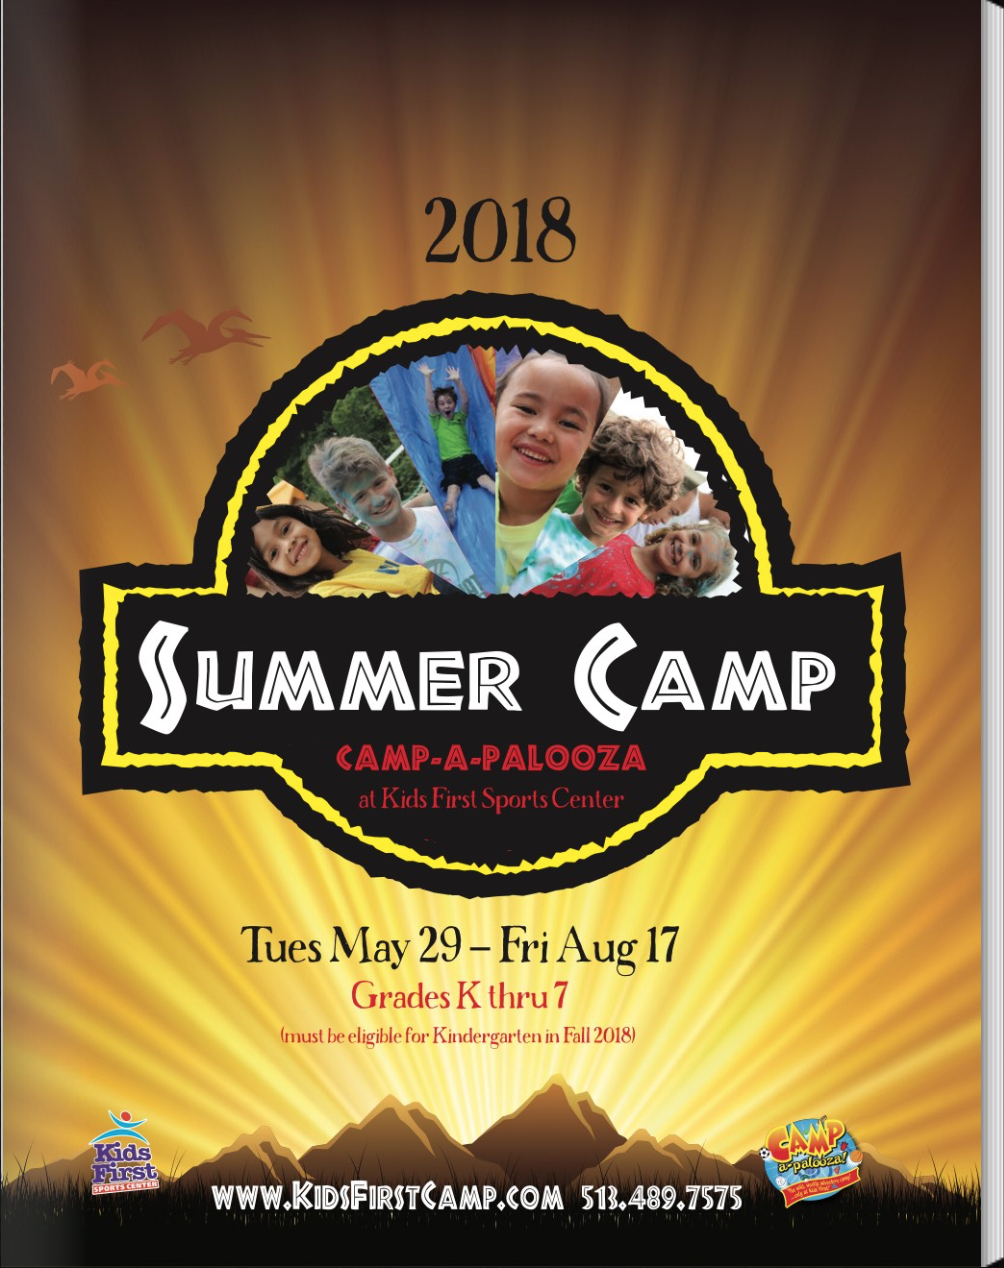 Kids First Sports Camps